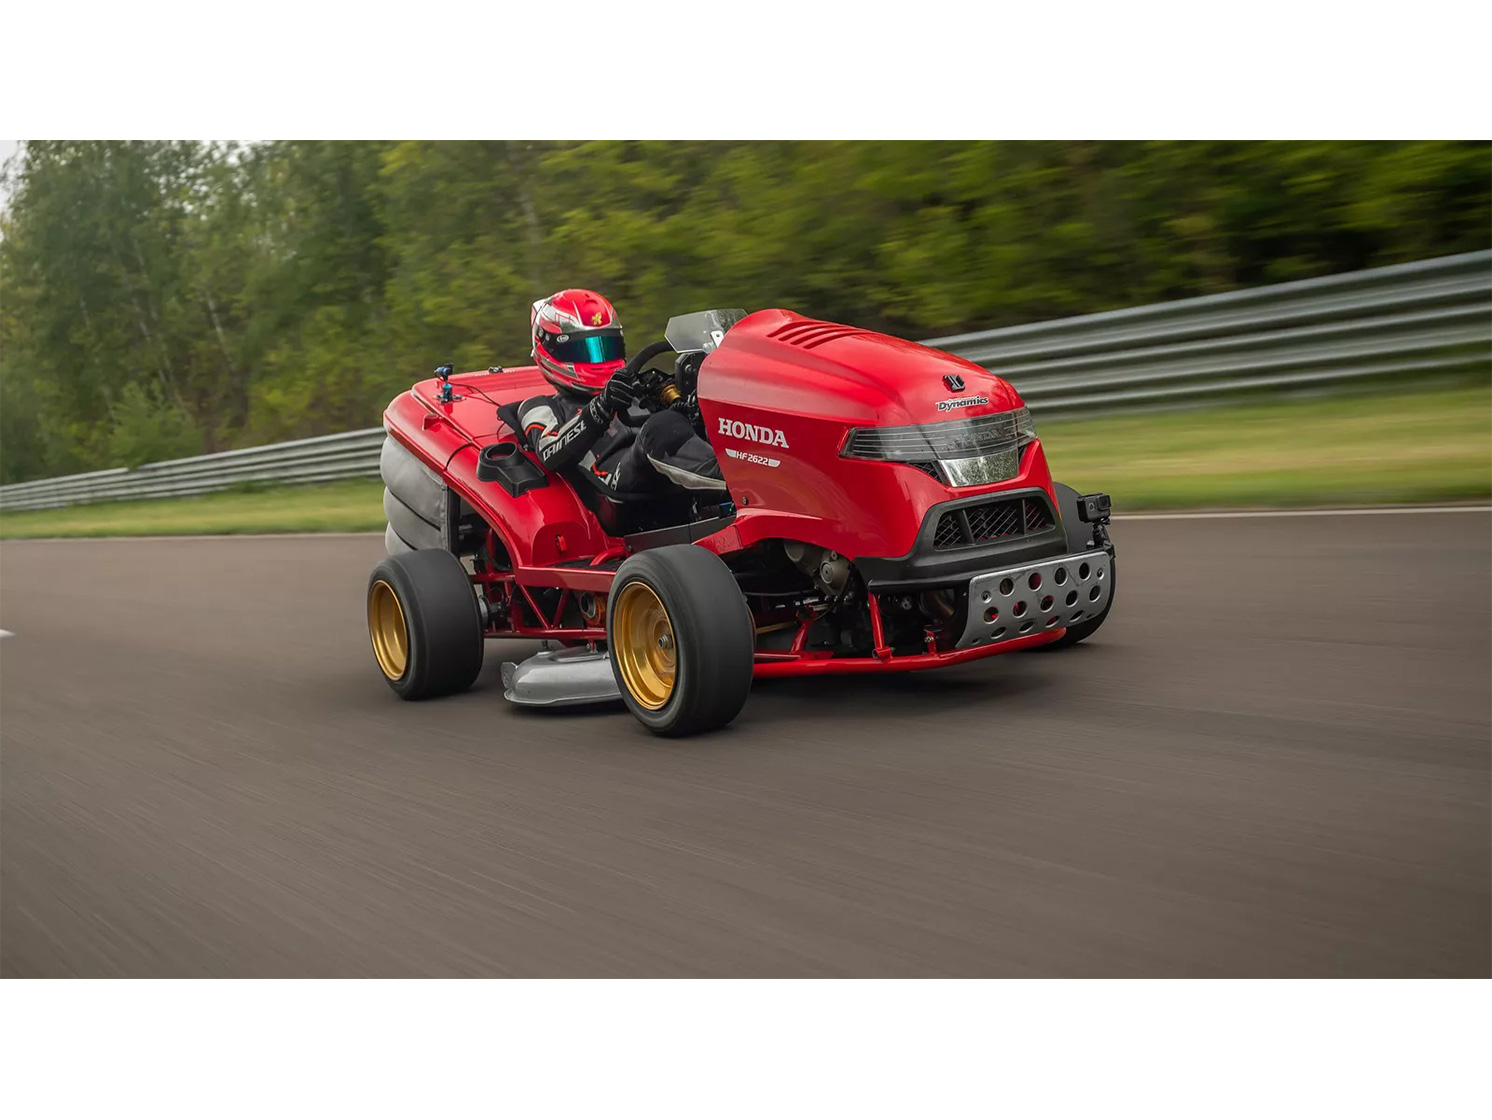 Honda Mean Mower hits 100 mph in record 6.29 seconds thumbnail